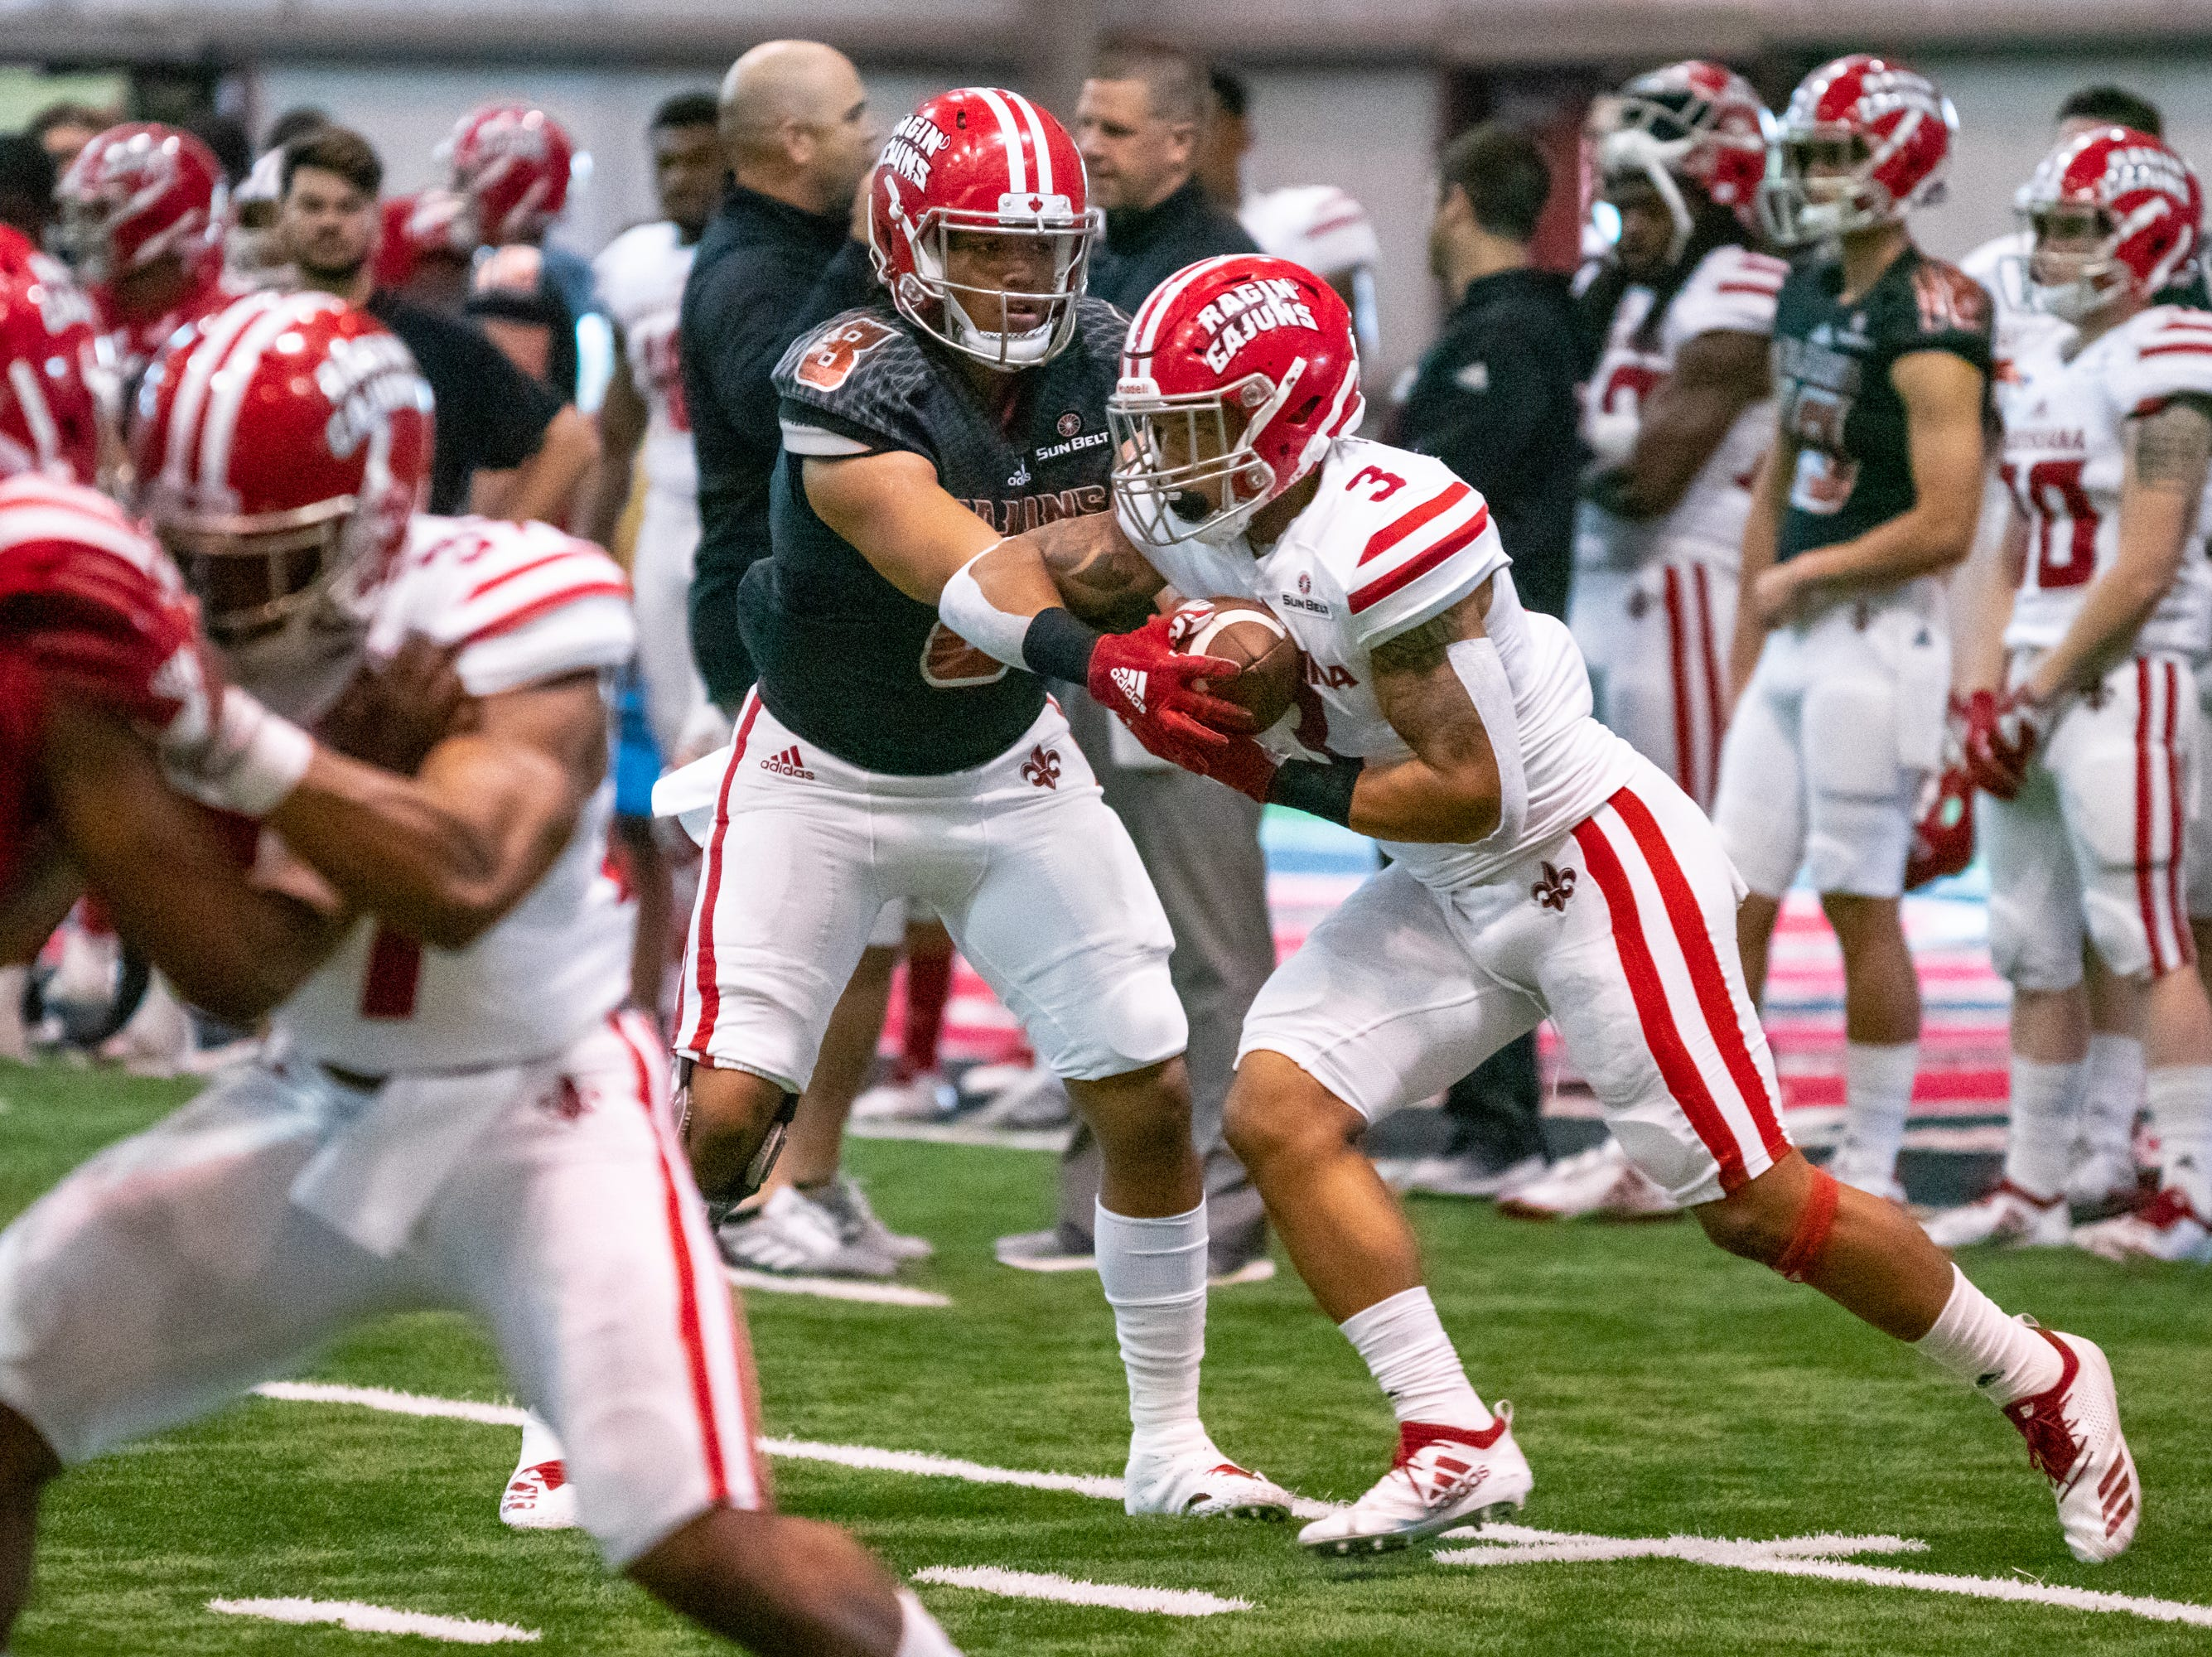 UL's quarterback Jai'ave Magalei hands off the ball during the play as the Ragin' Cajuns football team plays their annual Spring football game against one another in the Leon Moncla trainig facility on April 13, 2019.